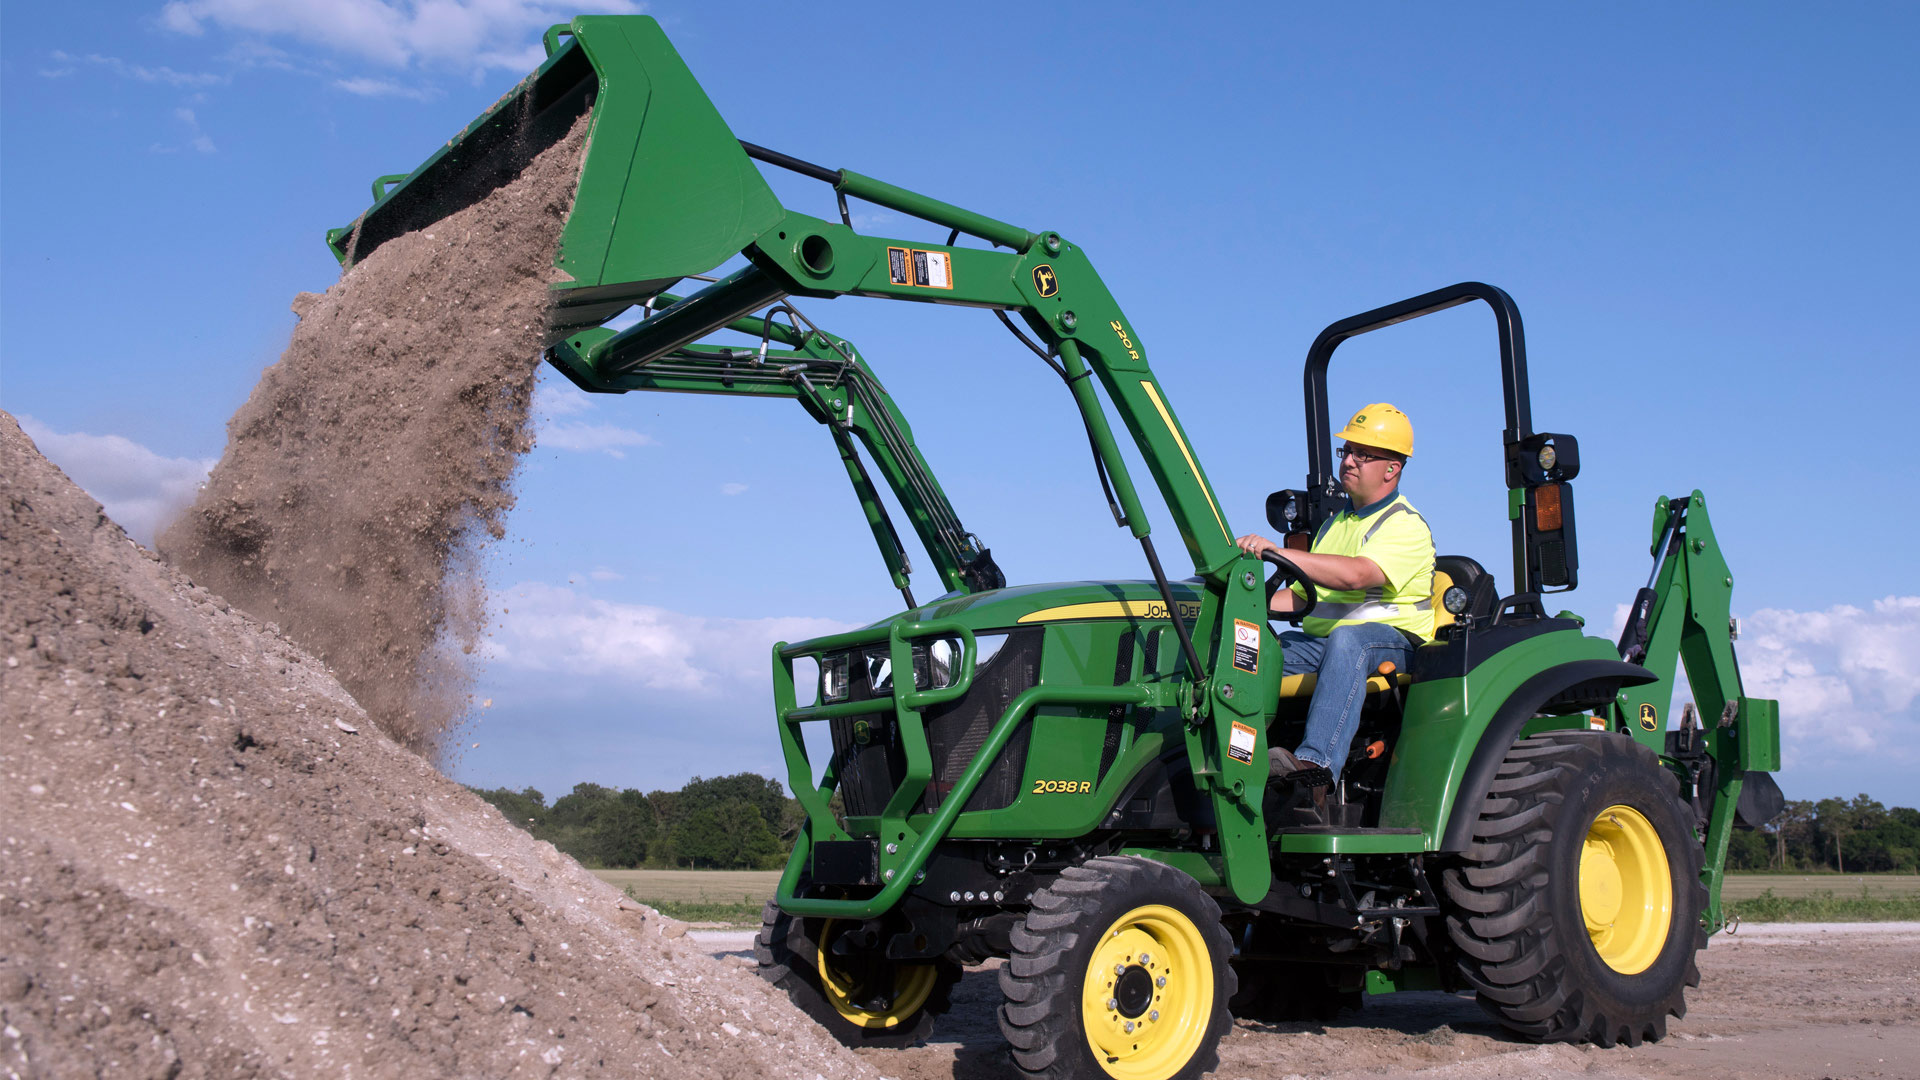 Explore the 220R Quik-Park™ Loader Capabilities